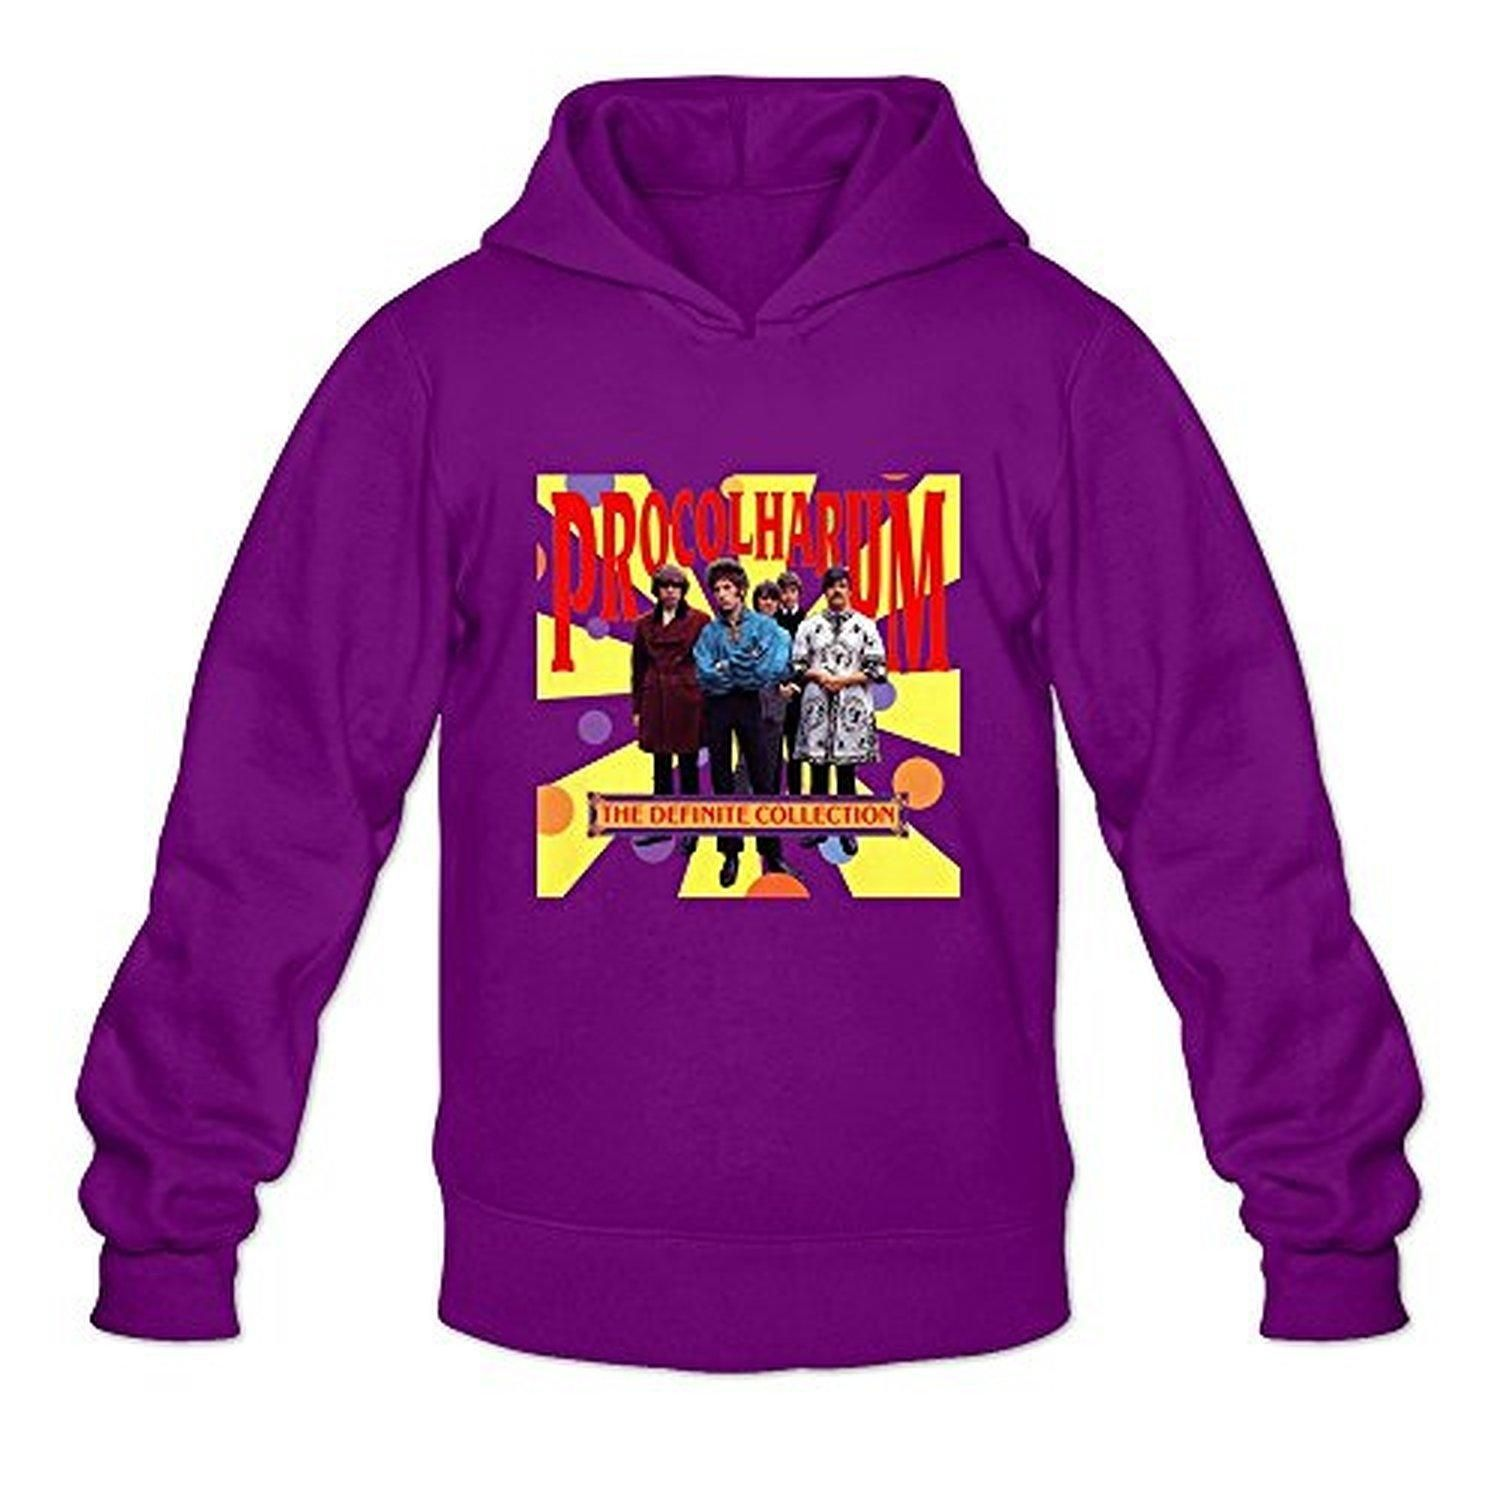 TWSY Men's Procol Harum Long Sleeve Hoodies Size XL Purple,100% Cotton - Brought to you by Avarsha.com